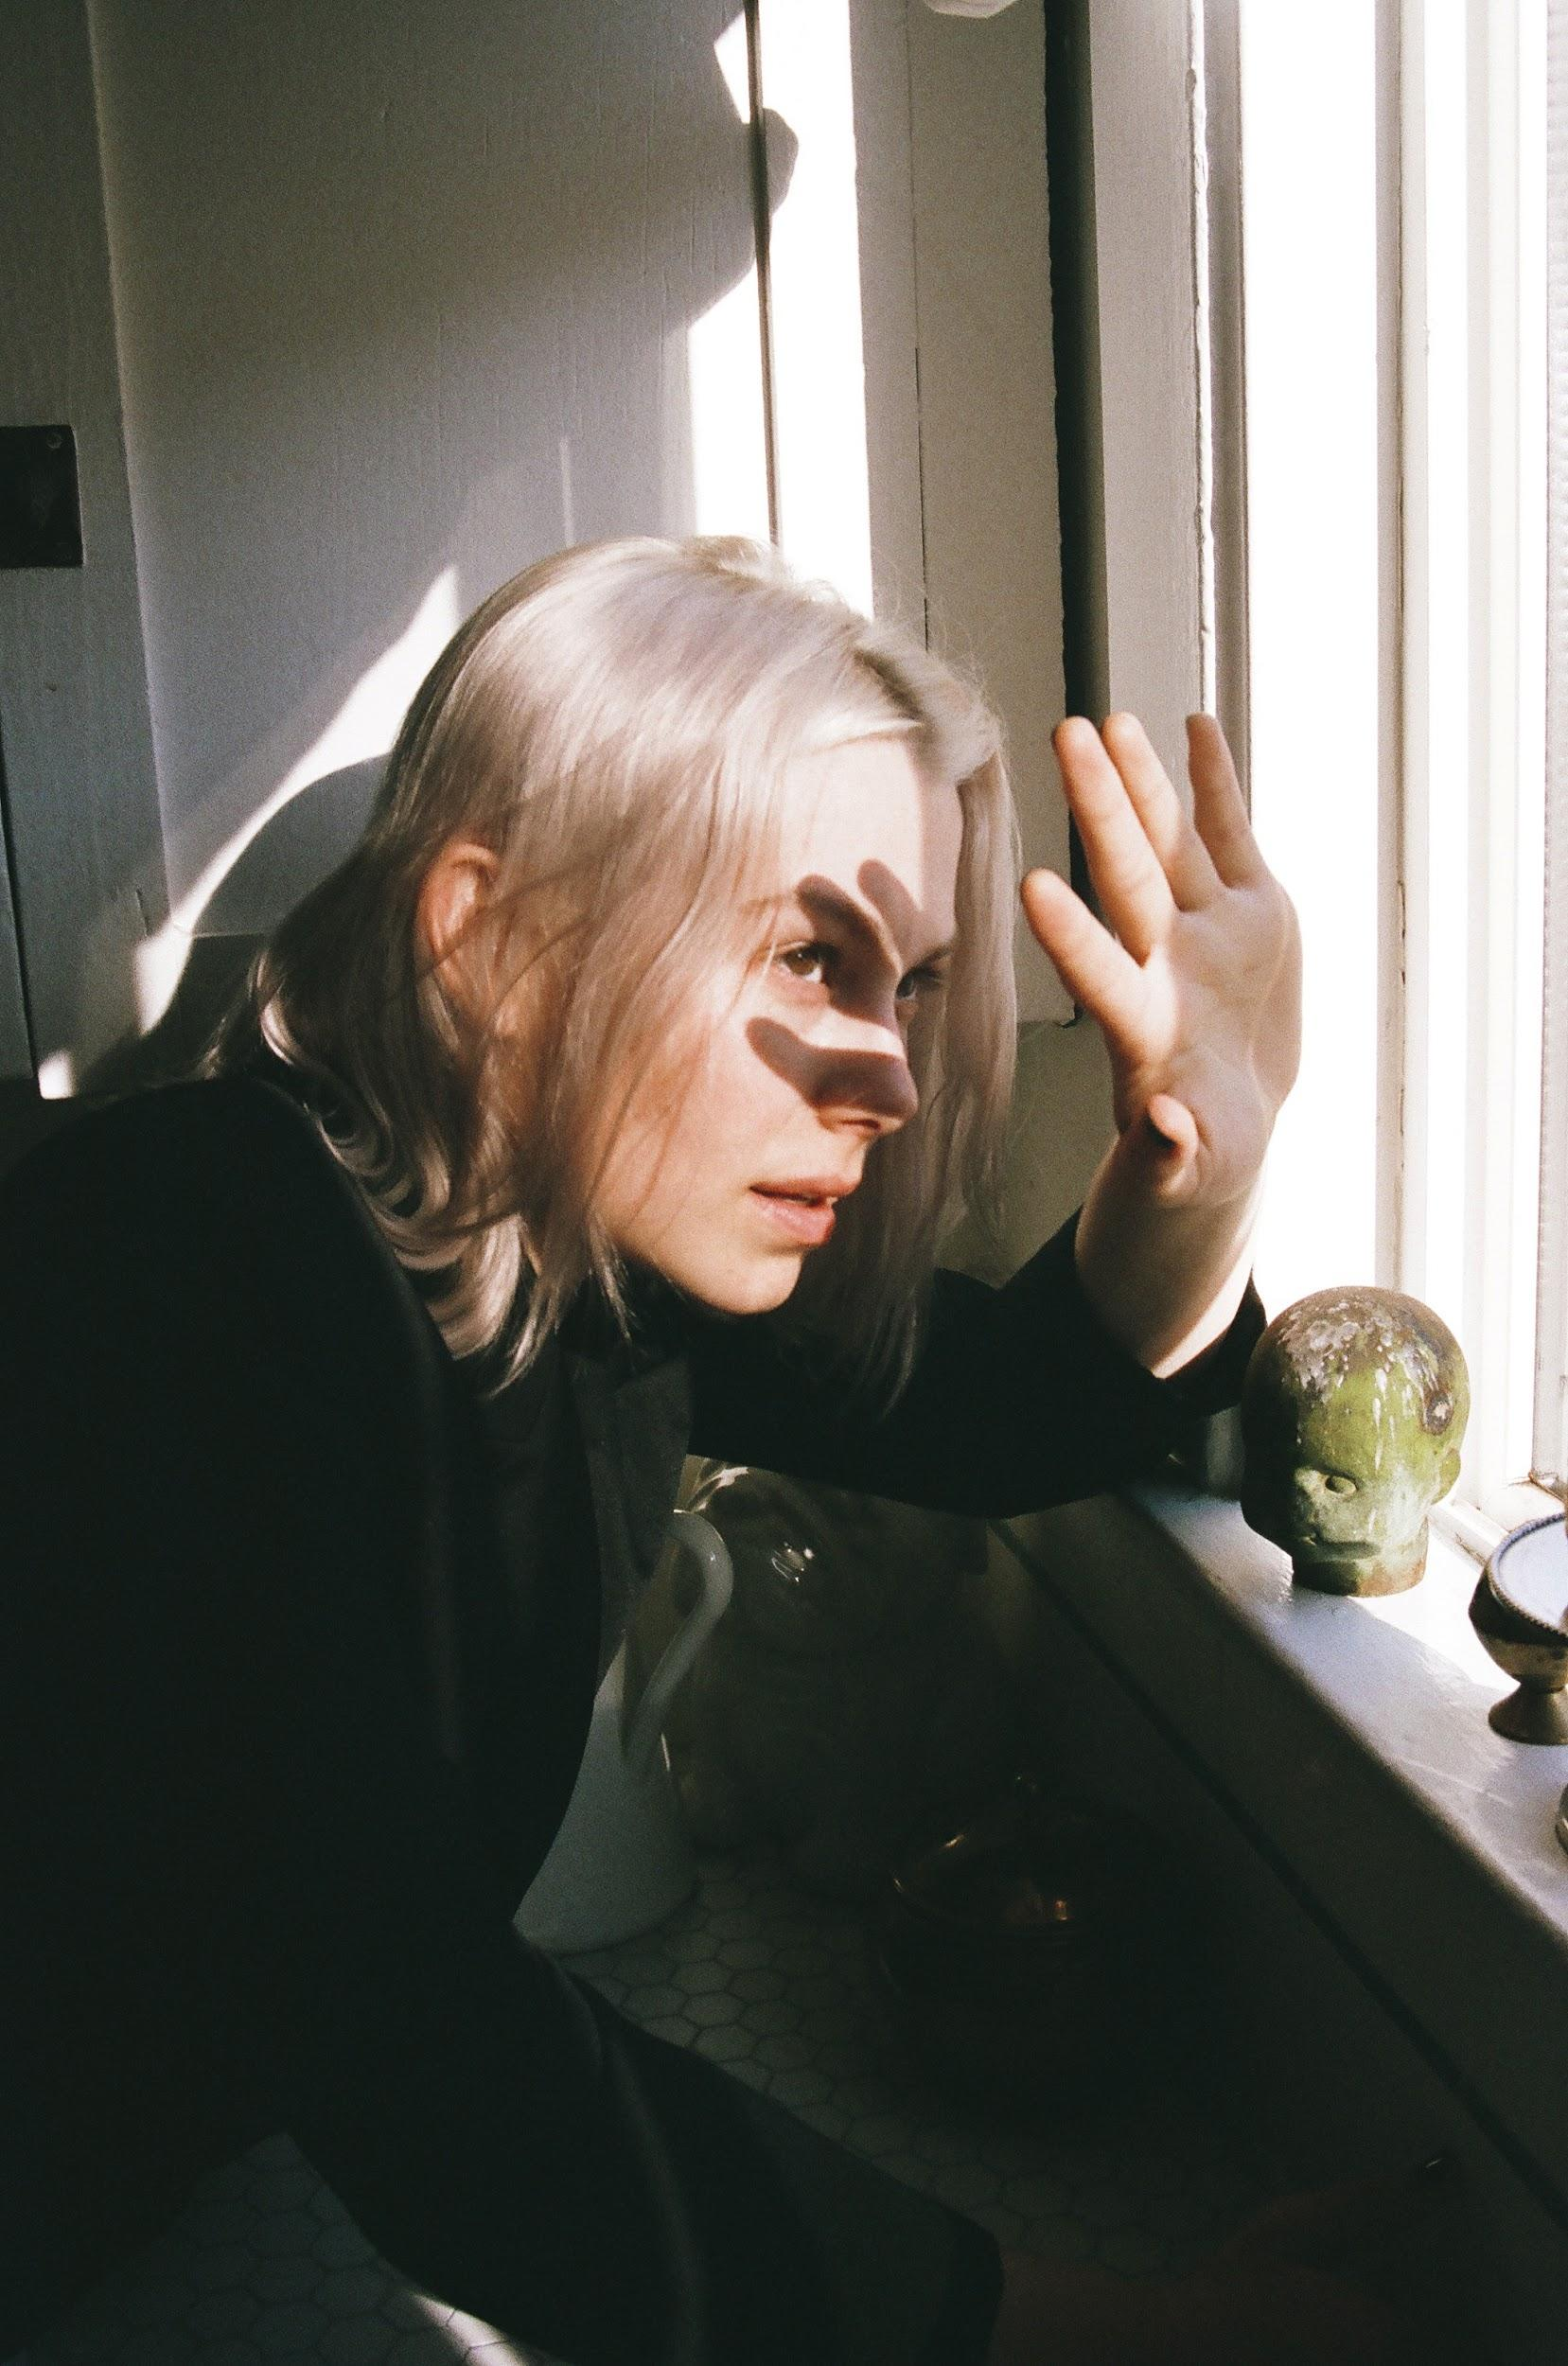 NEWS: Phoebe Bridgers shares haunting cover of McCarthy Trenching's 'Christmas Song' featuring Jackson Browne